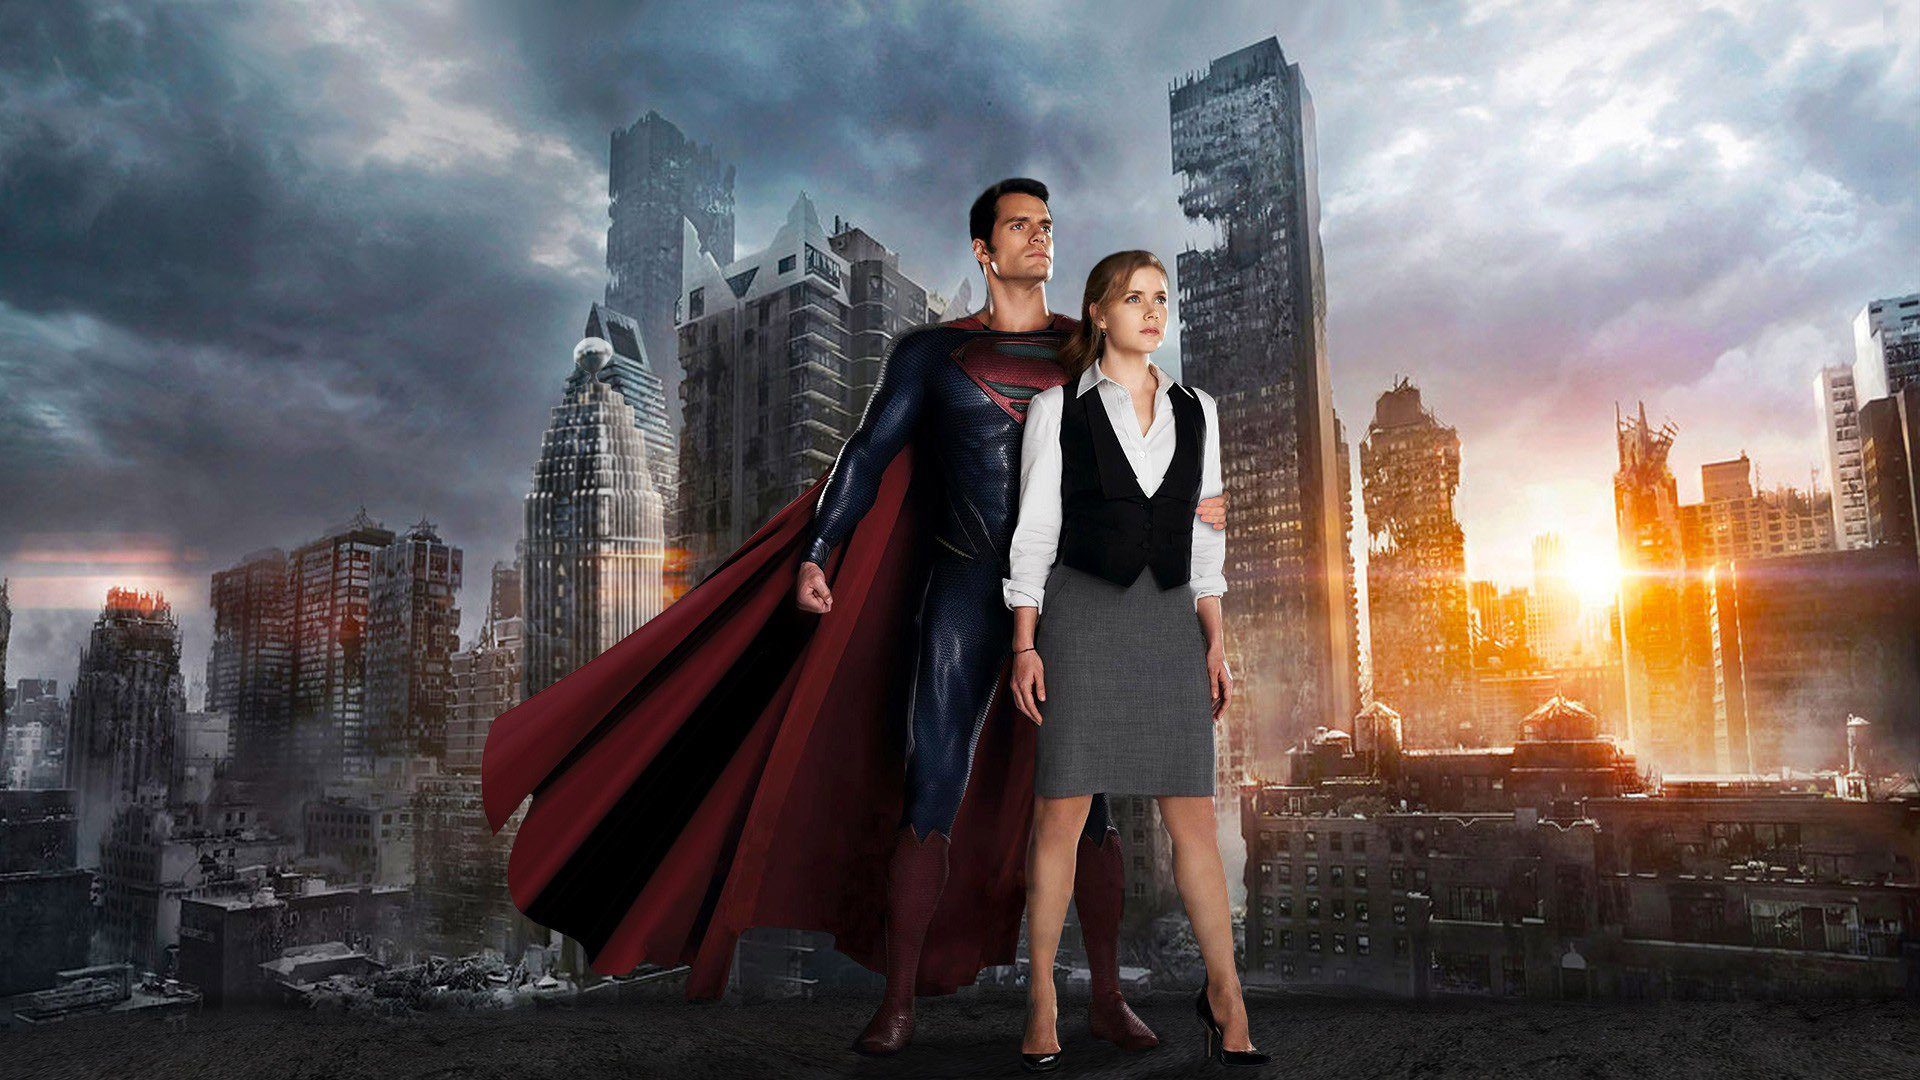 http://www.fortalezadelasoledad.com/imagenes/2017/03/06/superman-henry-cavill-lois-lane-amy-adams-man-of-steel.jpg